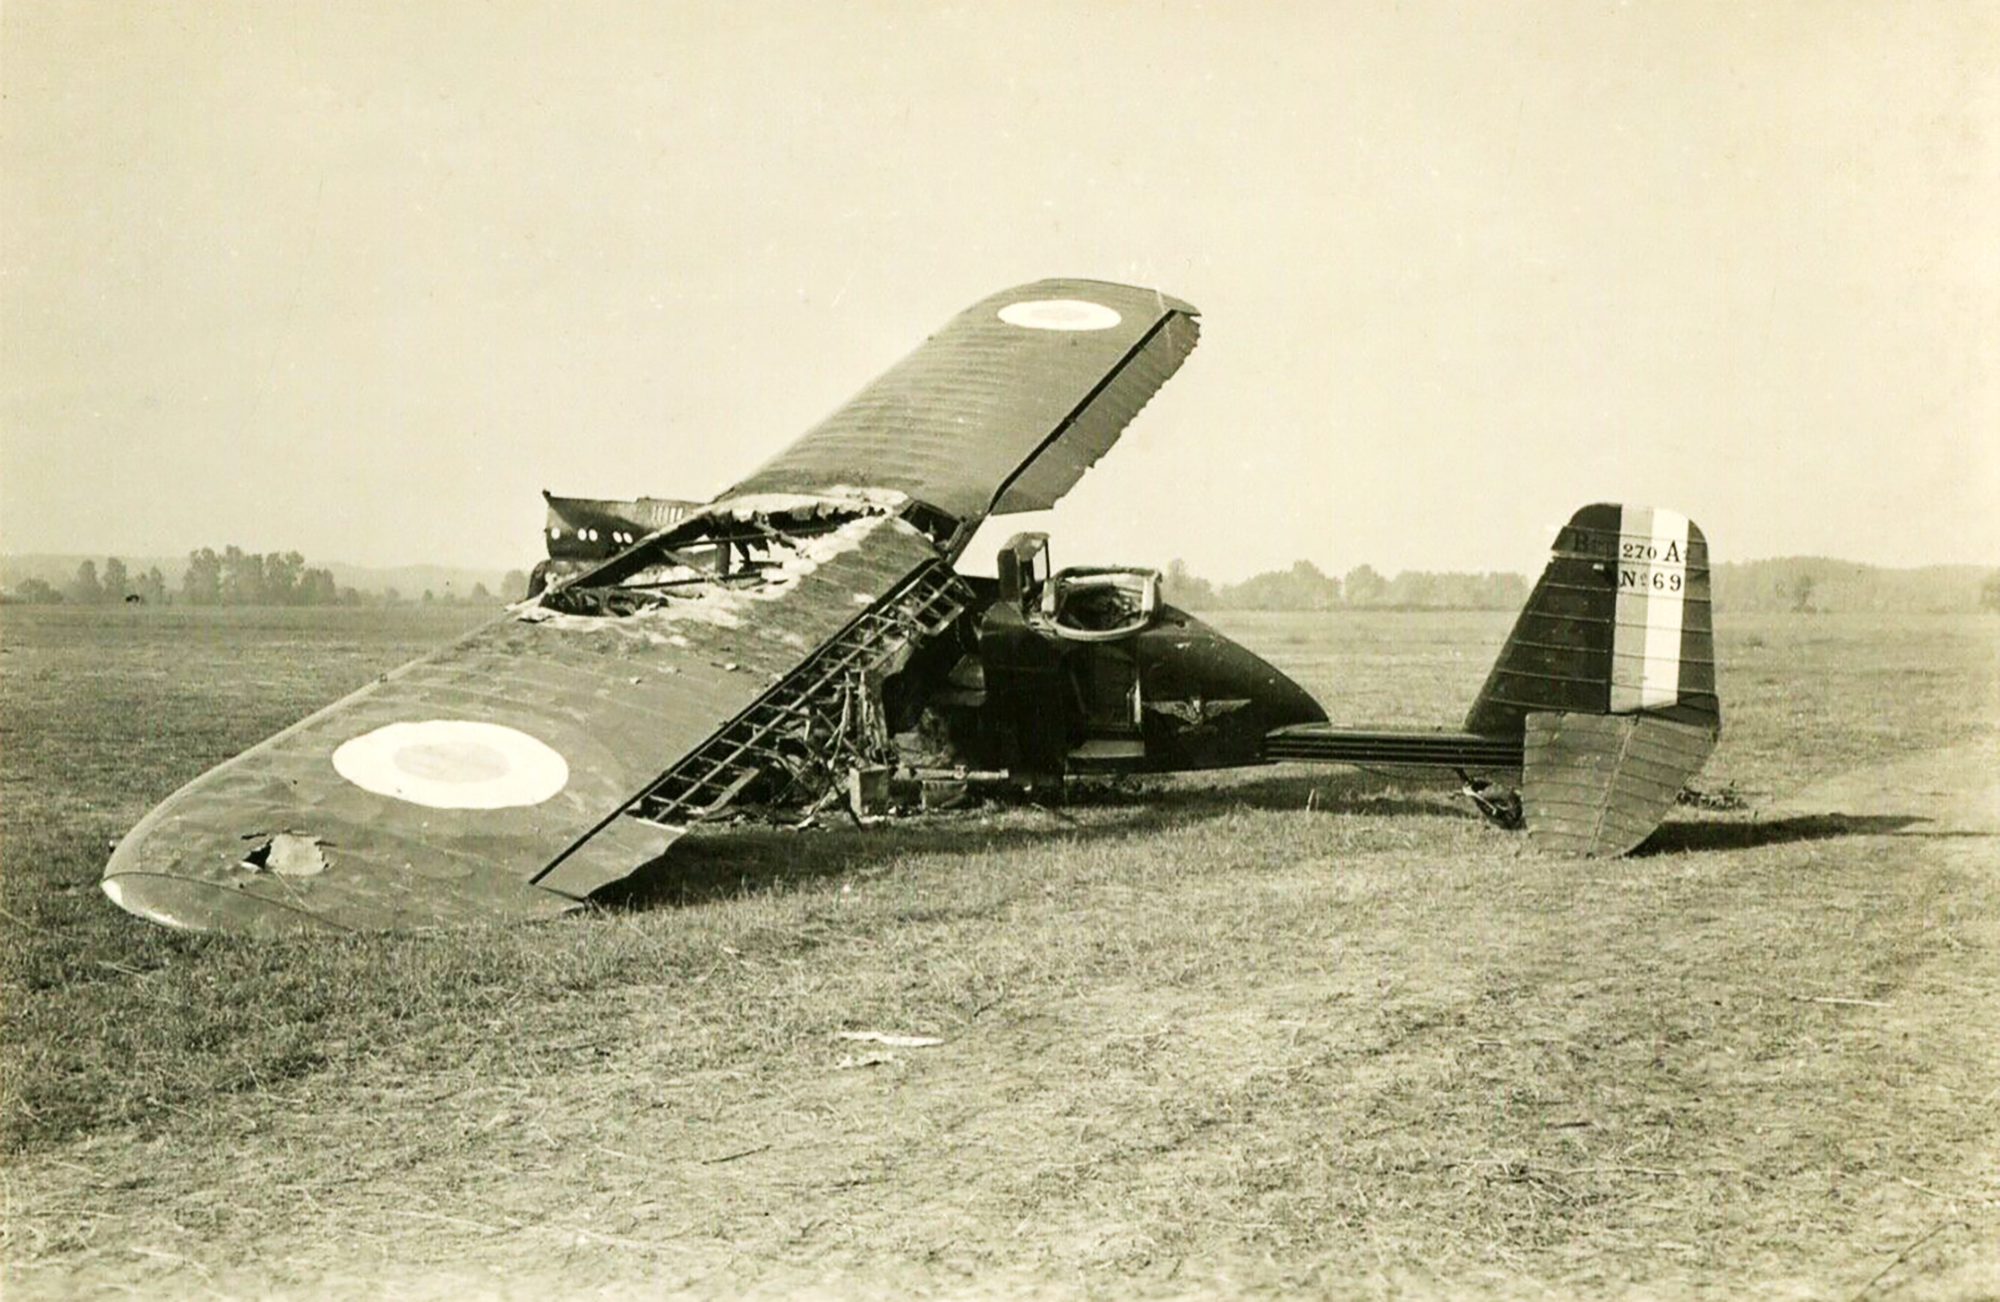 French Airforce Breguet 270 destroyed whilst on the ground battle of France May Jun 1940 ebay 03